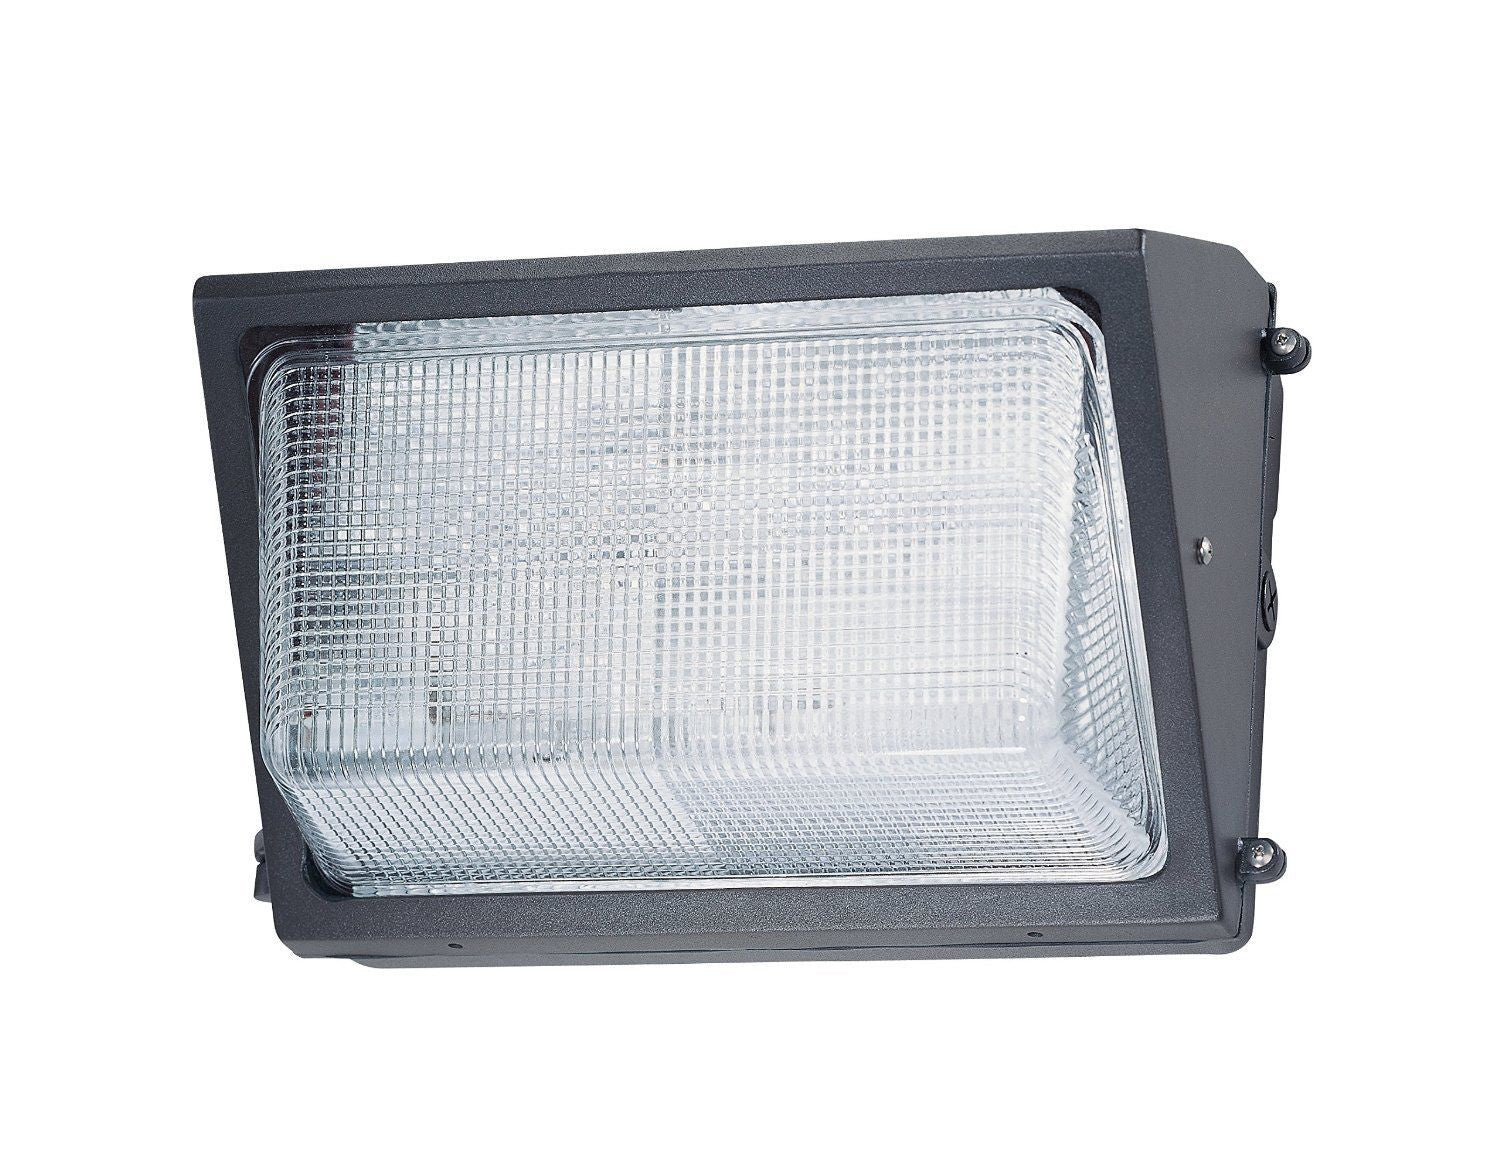 Nuvo Lighting 65-005R One Light HID 150 Watt High Pressure Sodium Outdoor Wallpack in  sc 1 st  Quality Discount Lighting & Nuvo Lighting 65-005R One Light HID 150 Watt High Pressure Sodium ...